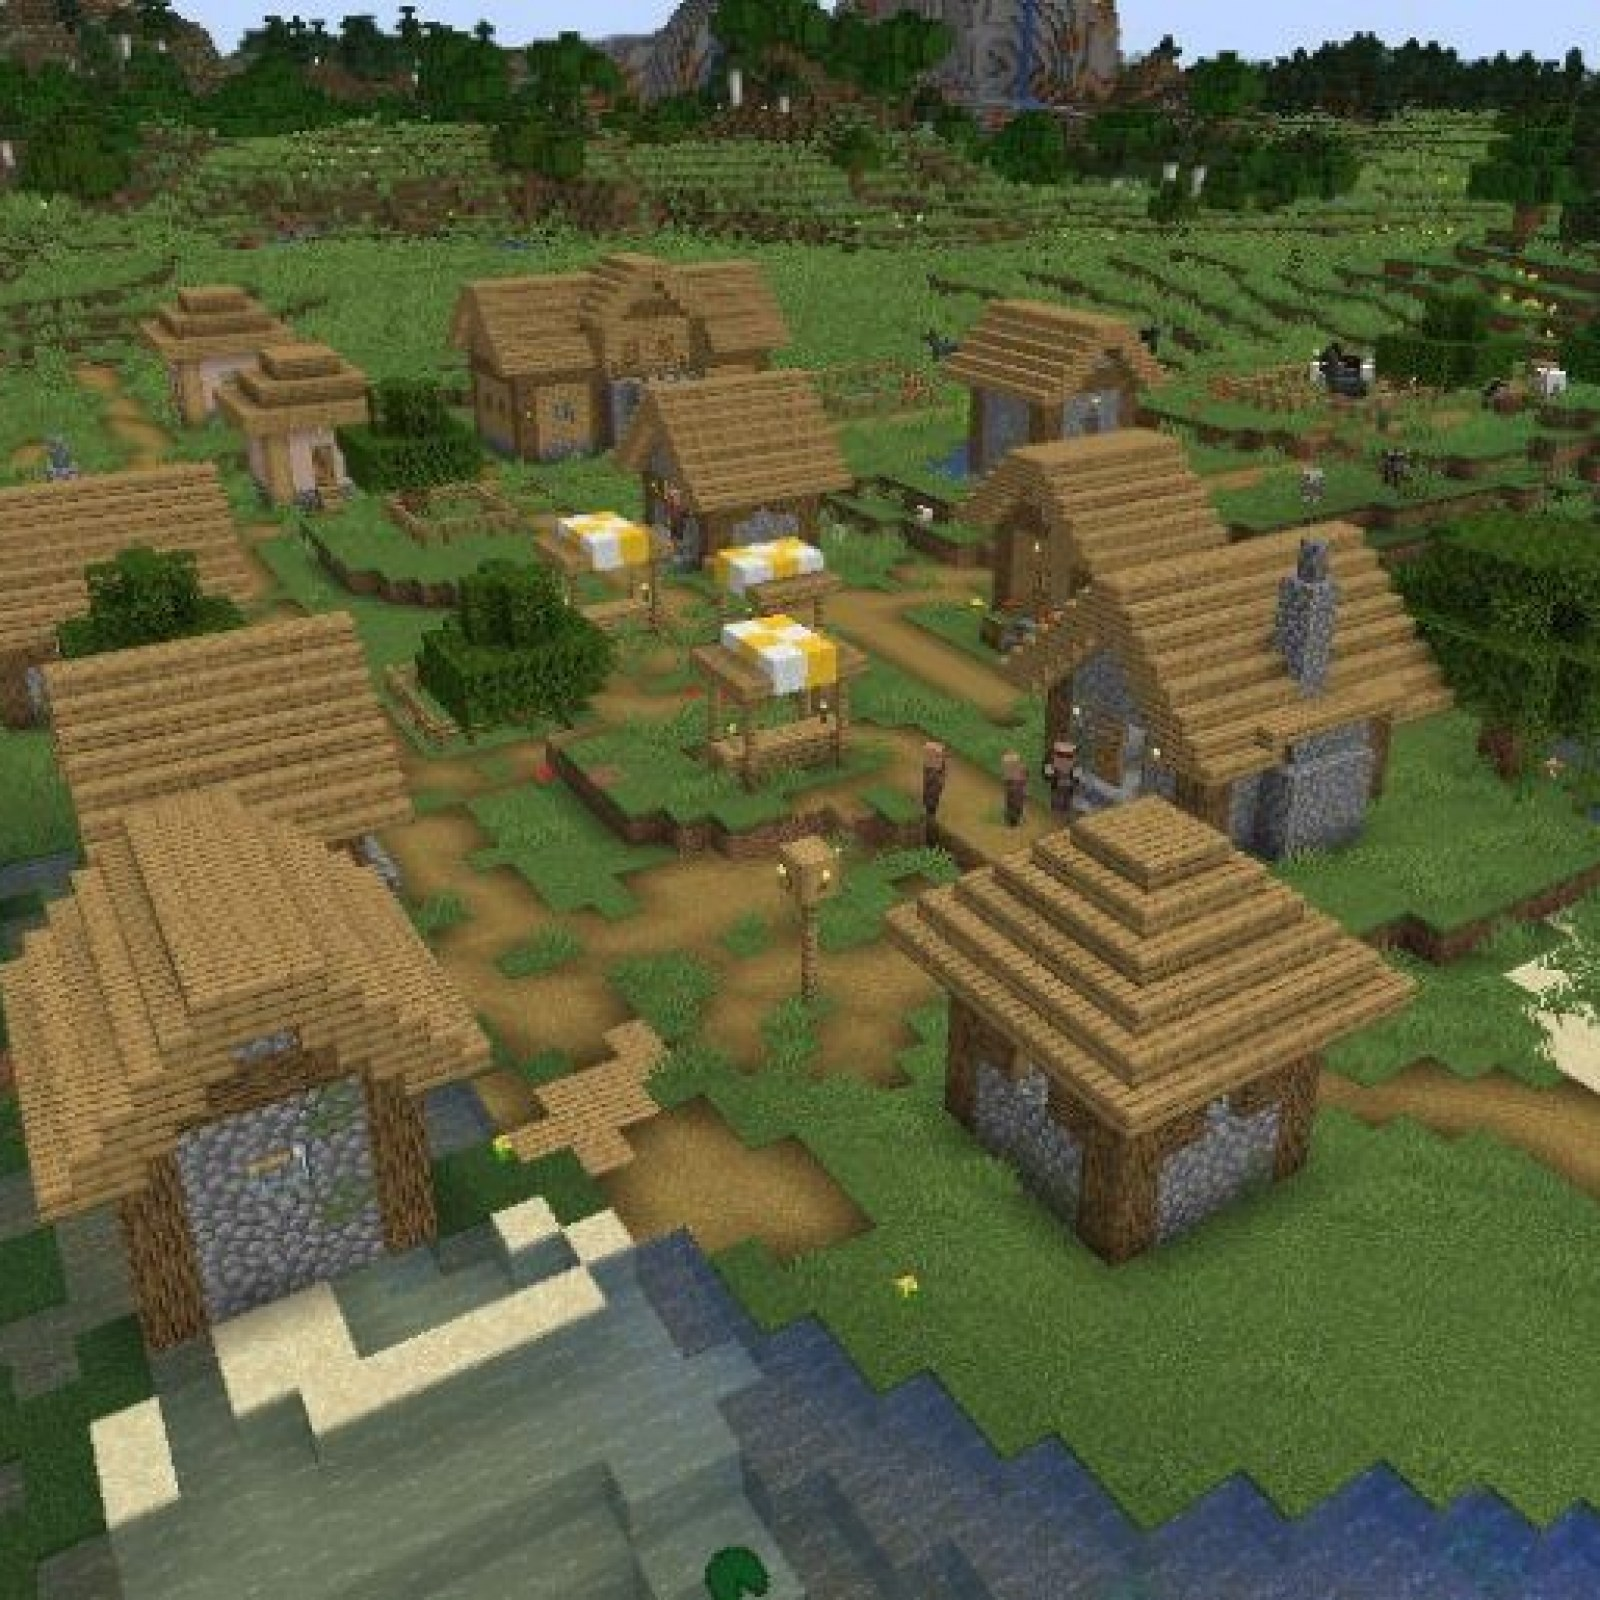 Minecraft 1 14 1 Pre-Release 1: Snapshot Brings Tons of Fixes for